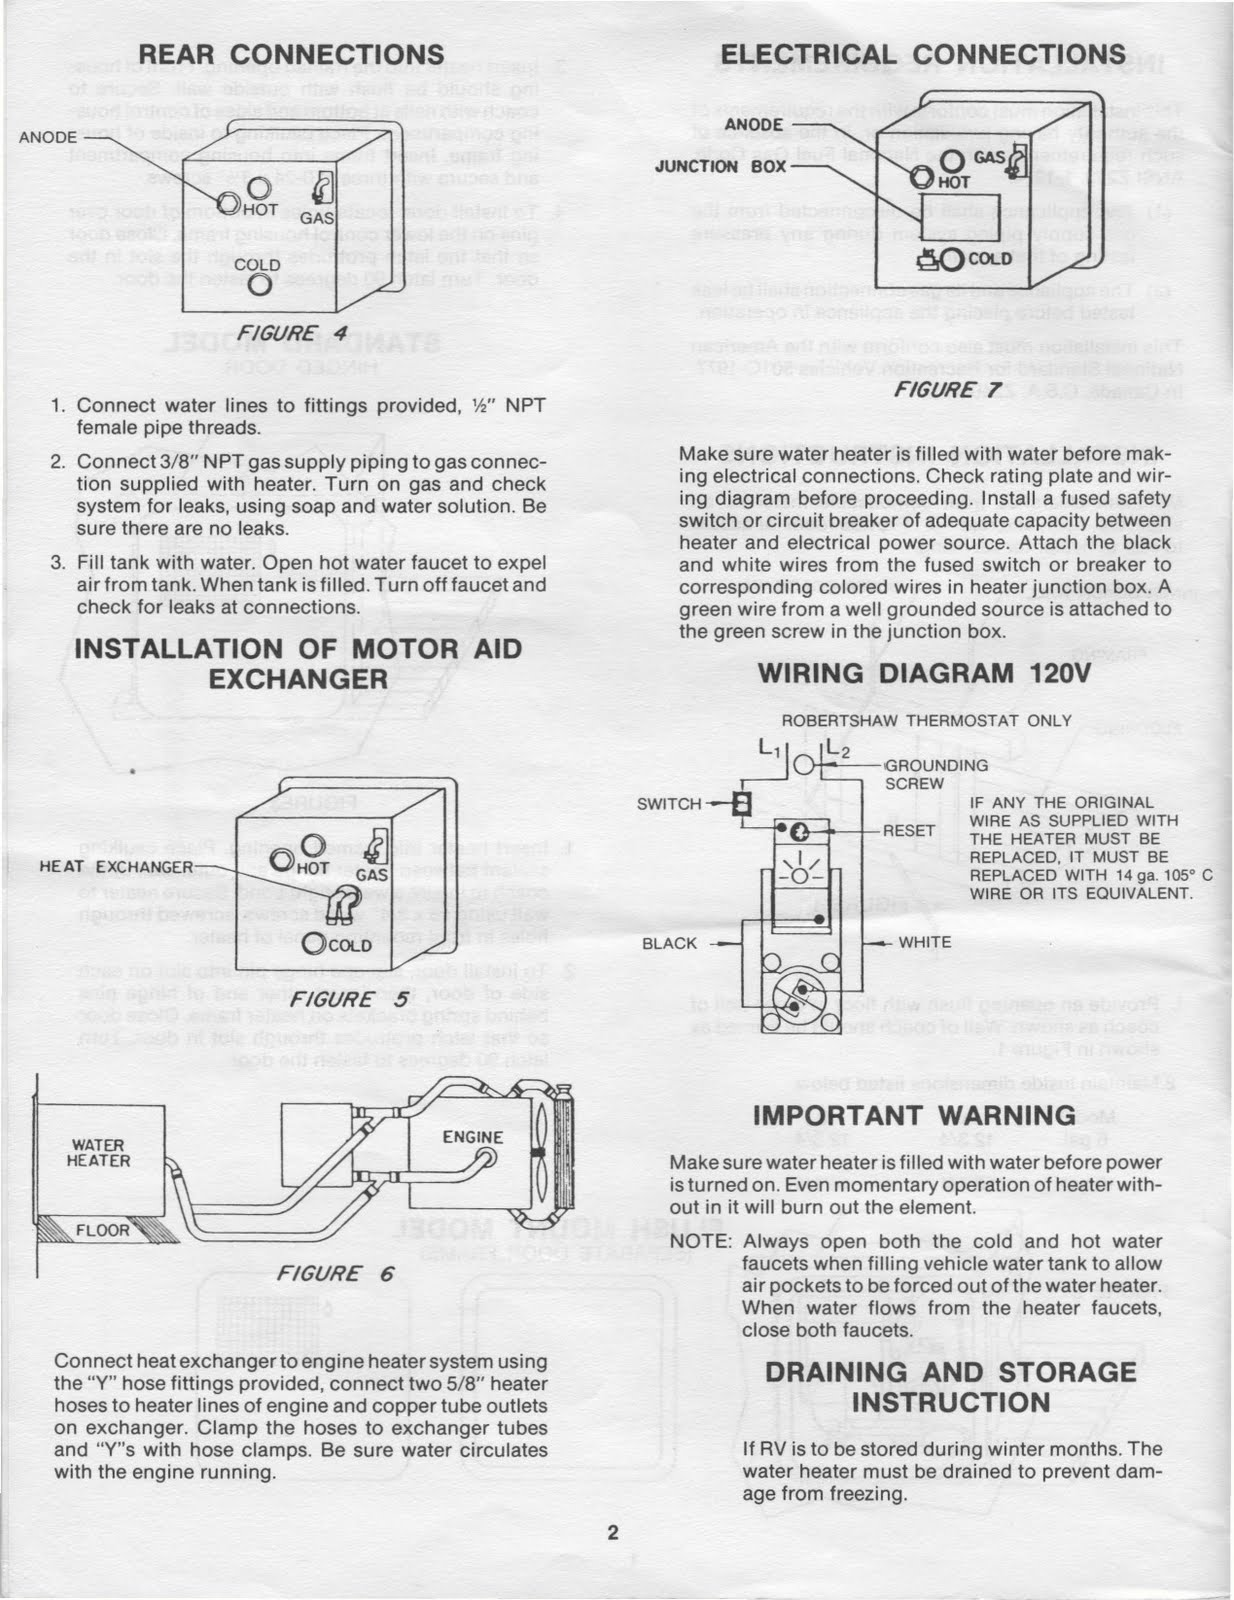 1983 Fleetwood Pace Arrow Owners Manuals: Morflo water